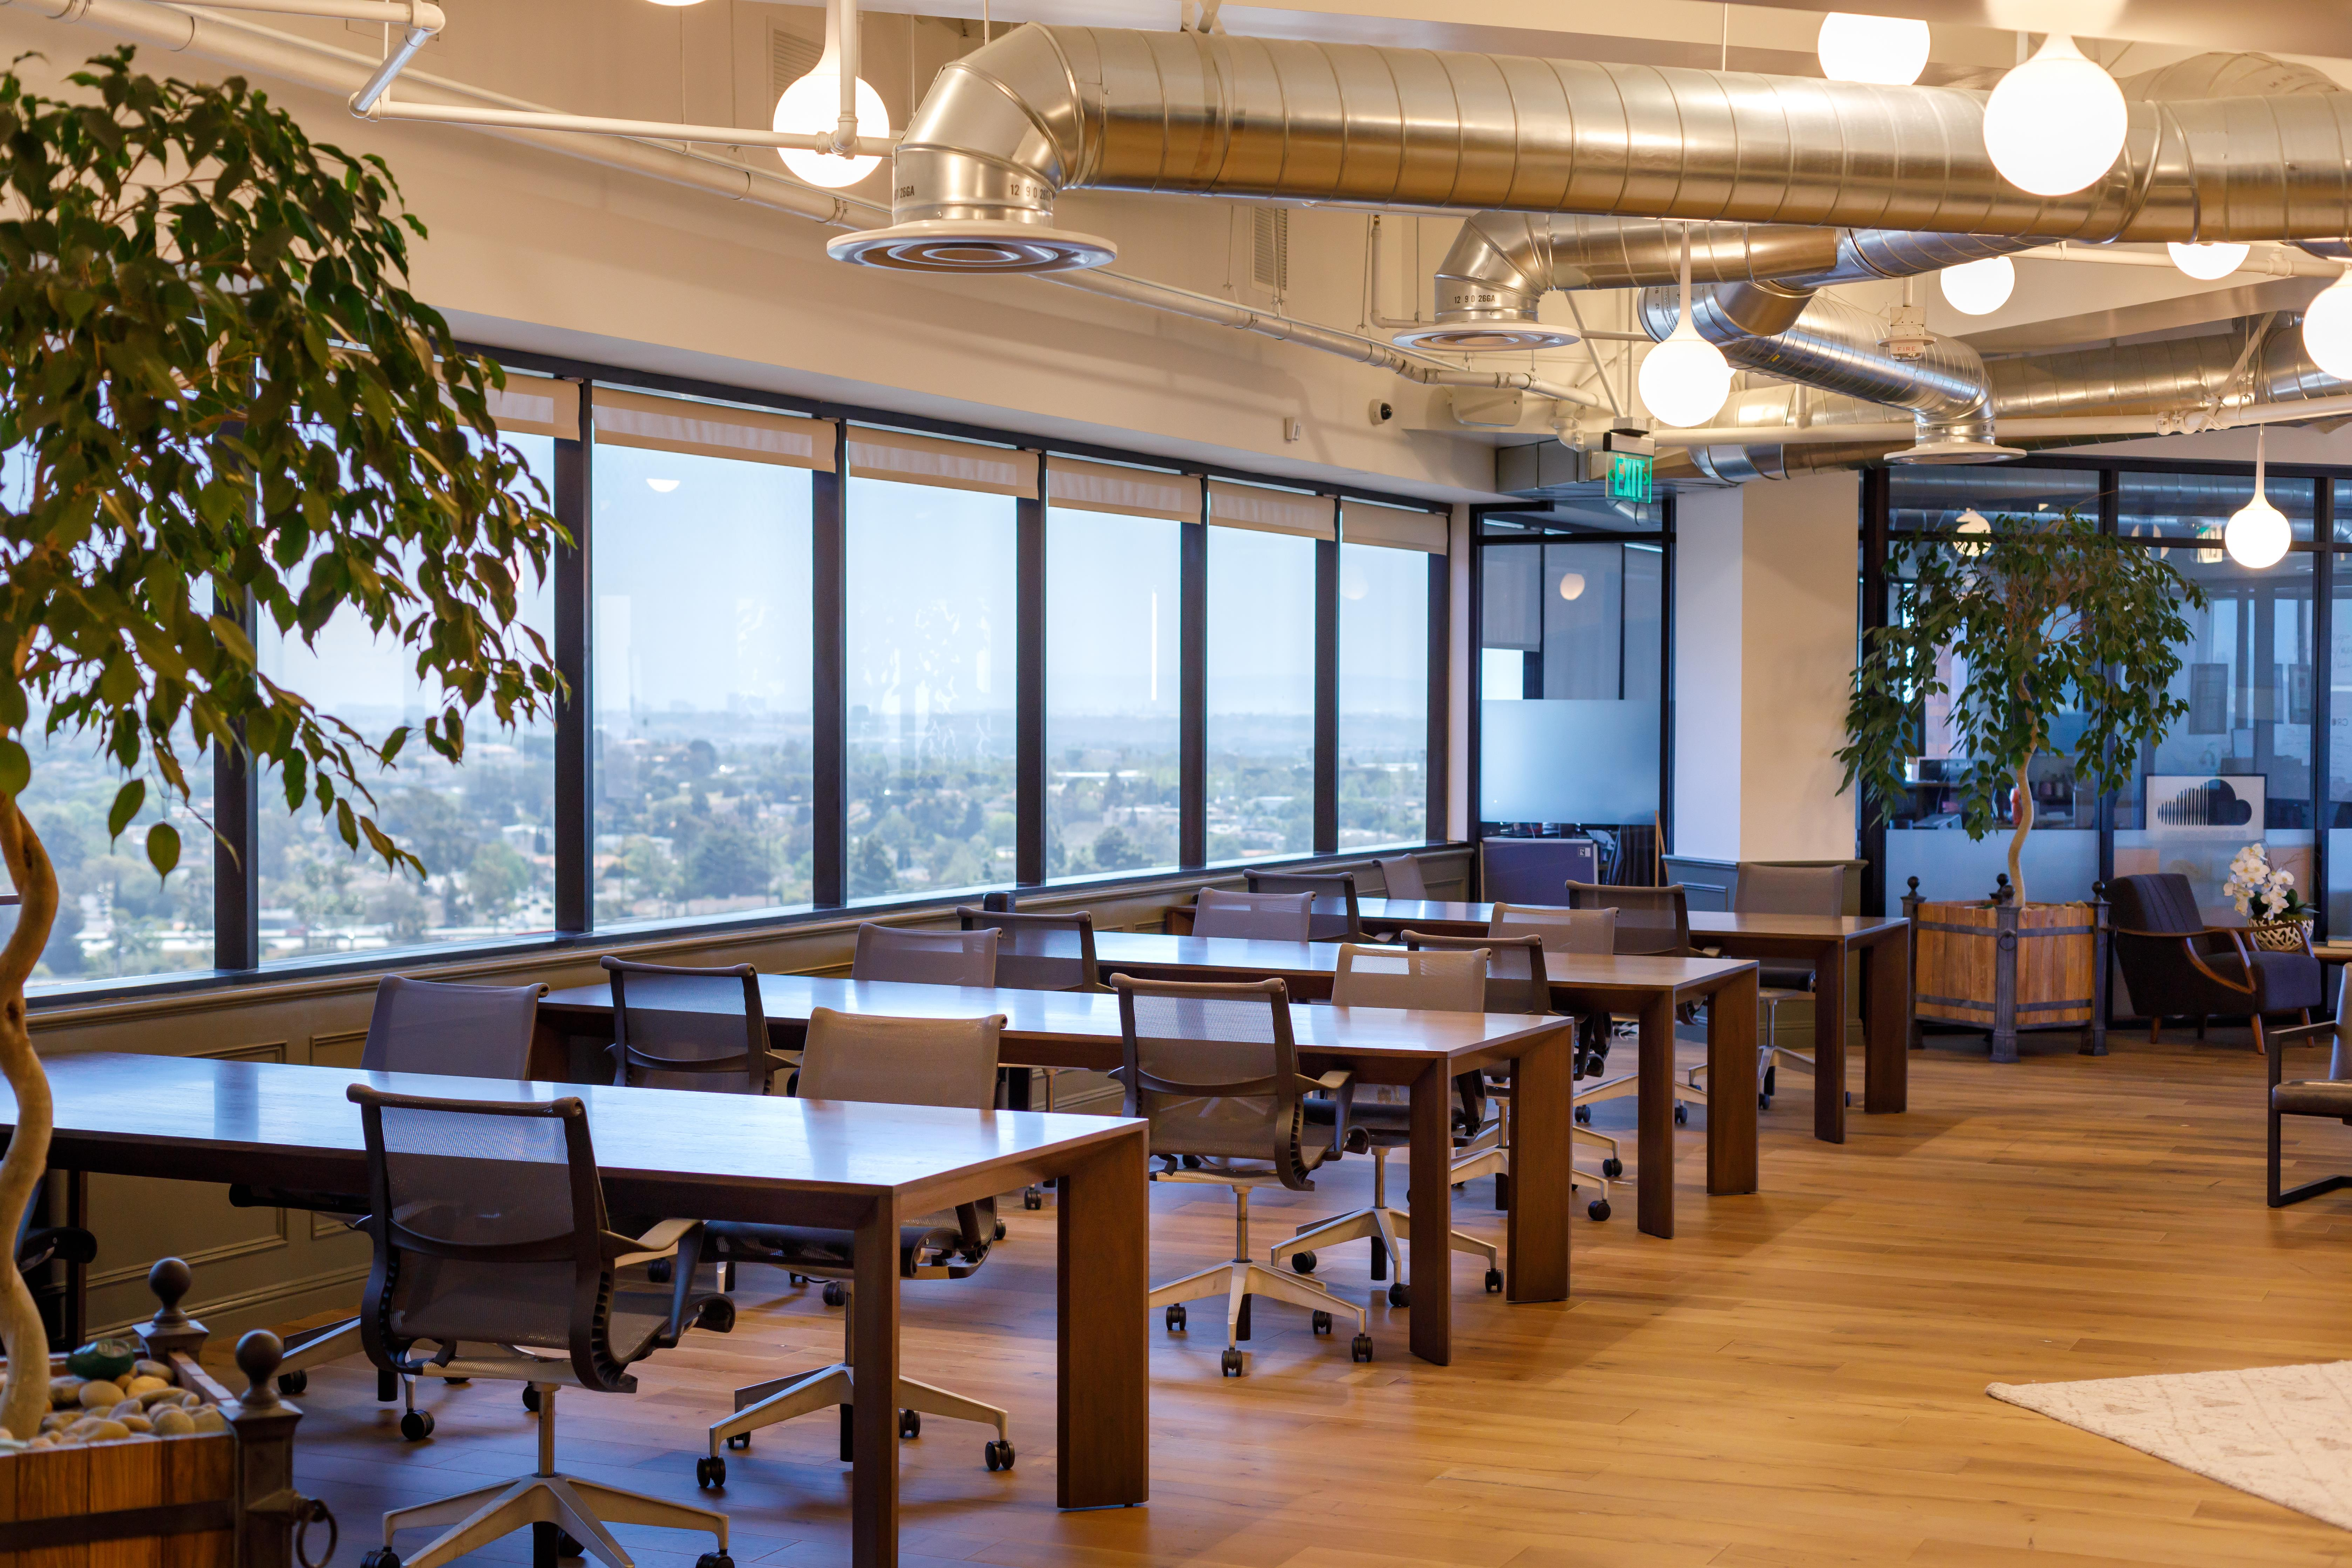 Village Workspaces - Up to 8 person city view office